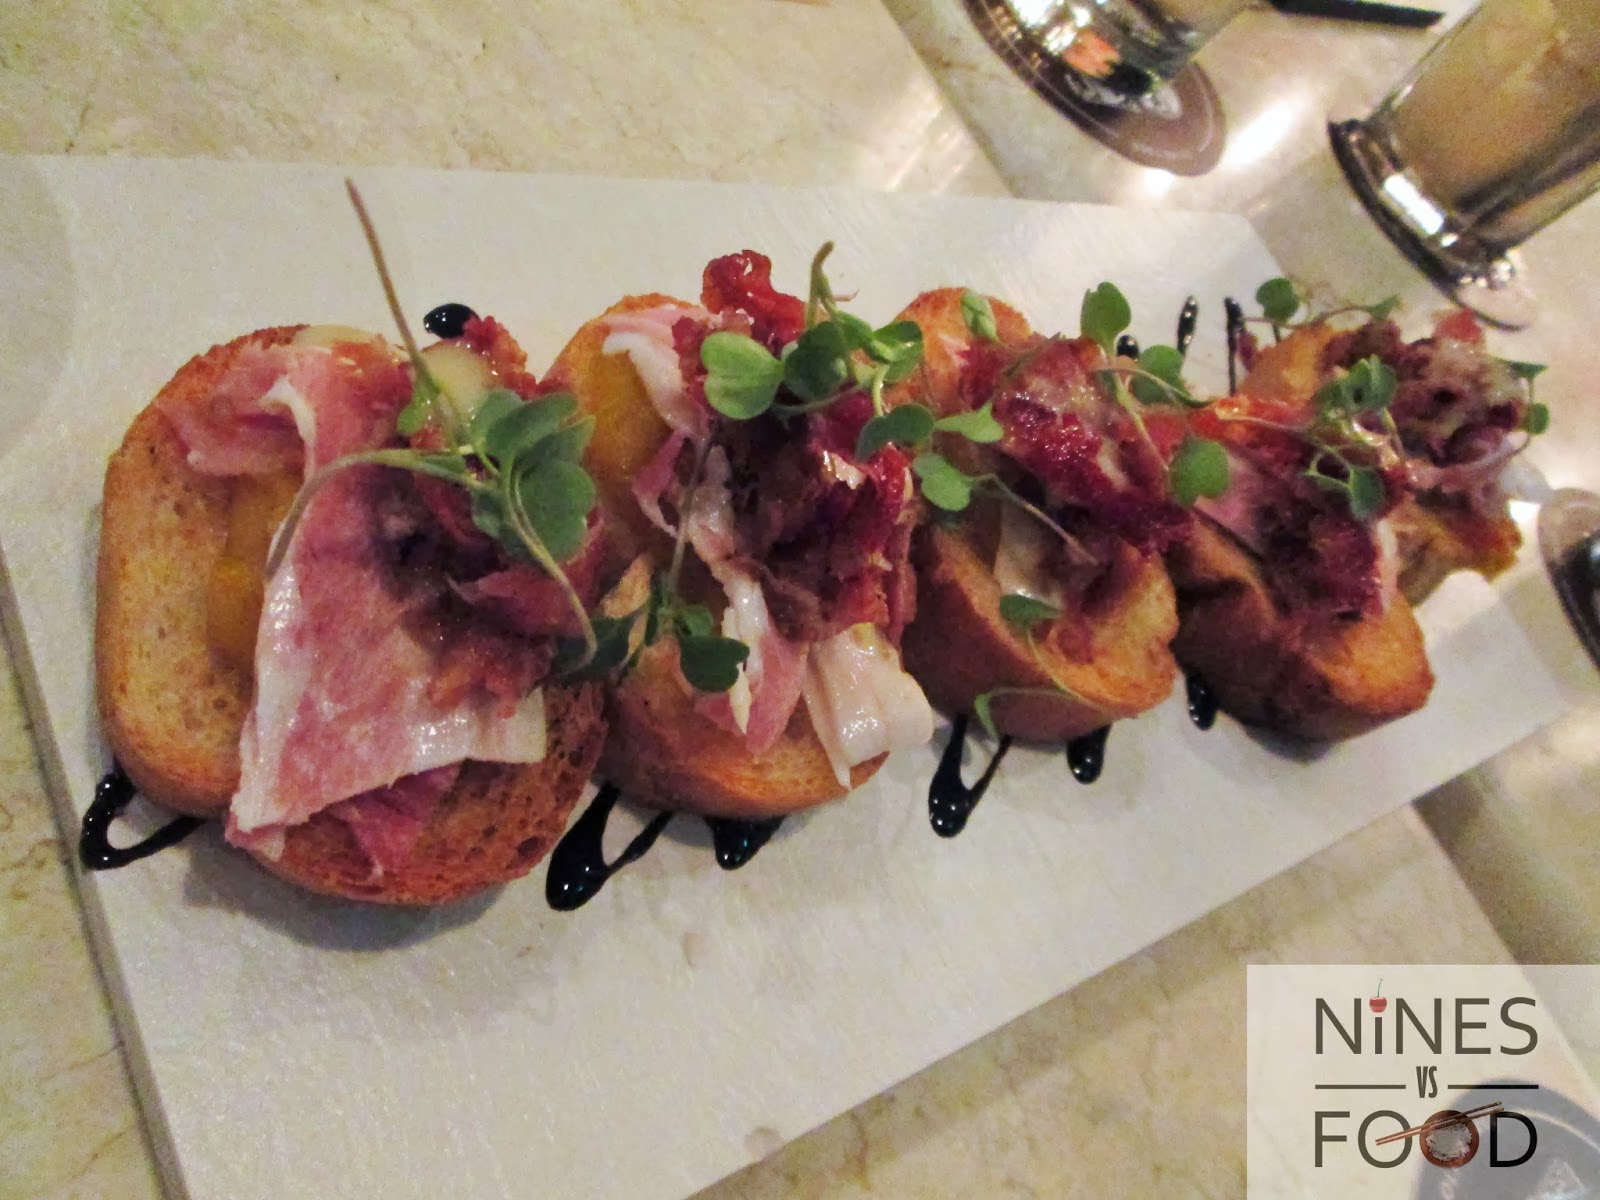 Nines vs. Food - Olive Tree Kitchen and Bar-13.jpg